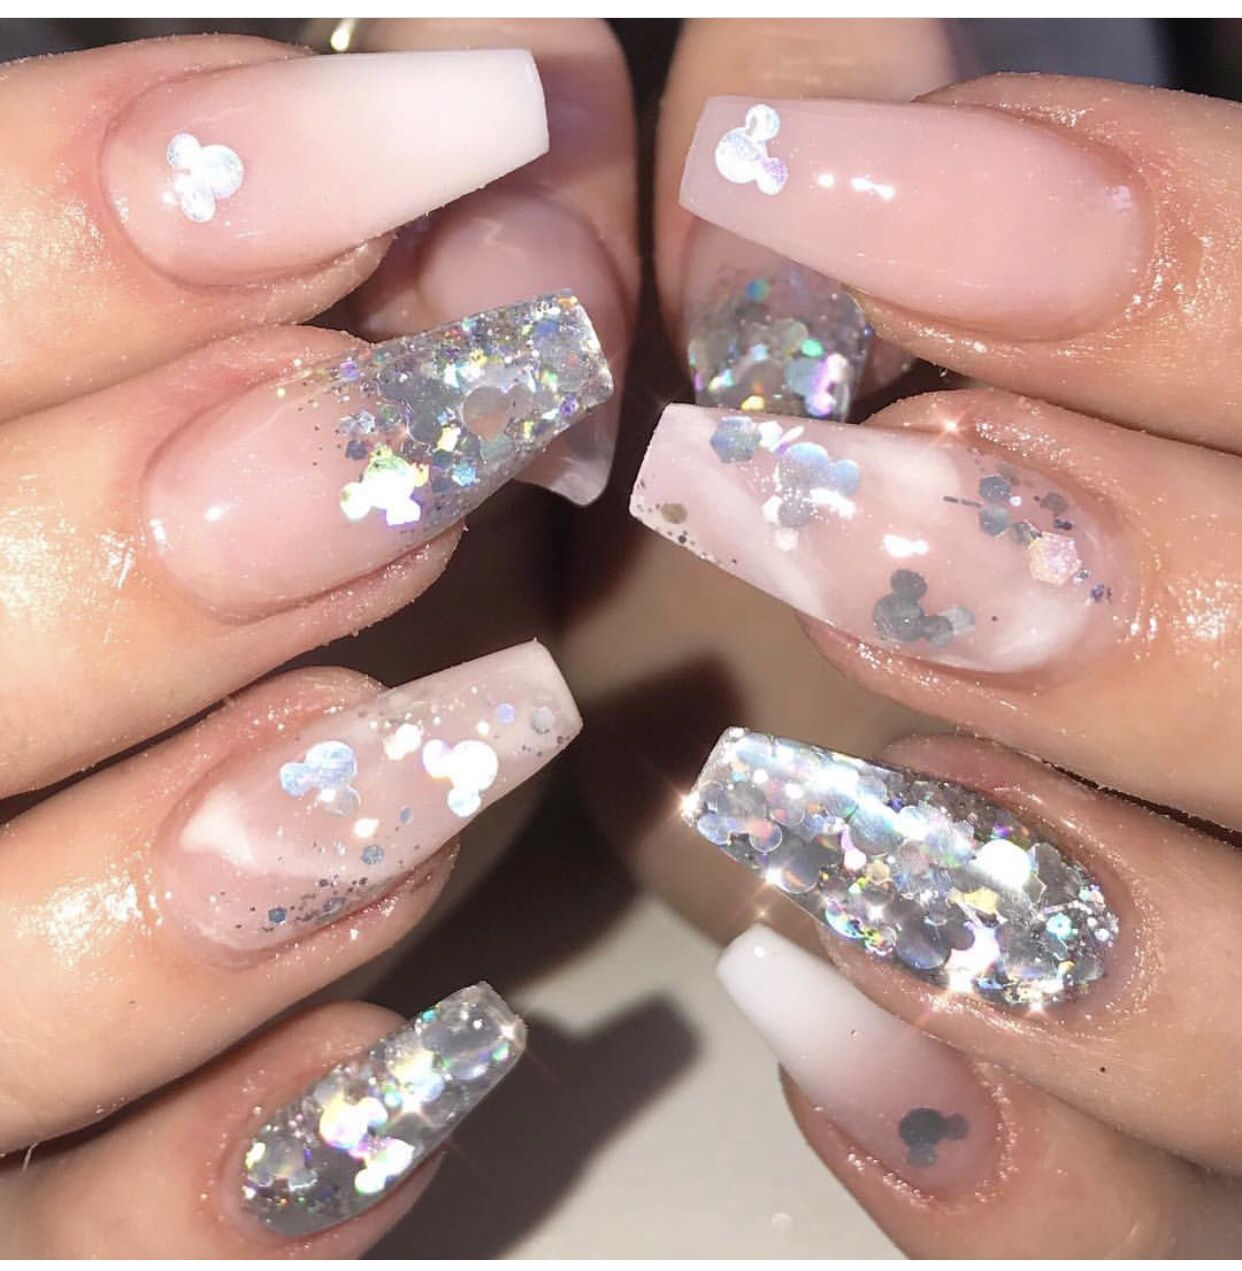 Mickey Mouse Shaped Glitter Nails In 2020 Disney Acrylic Nails Mickey Nails Acrylic Nails Coffin Glitter